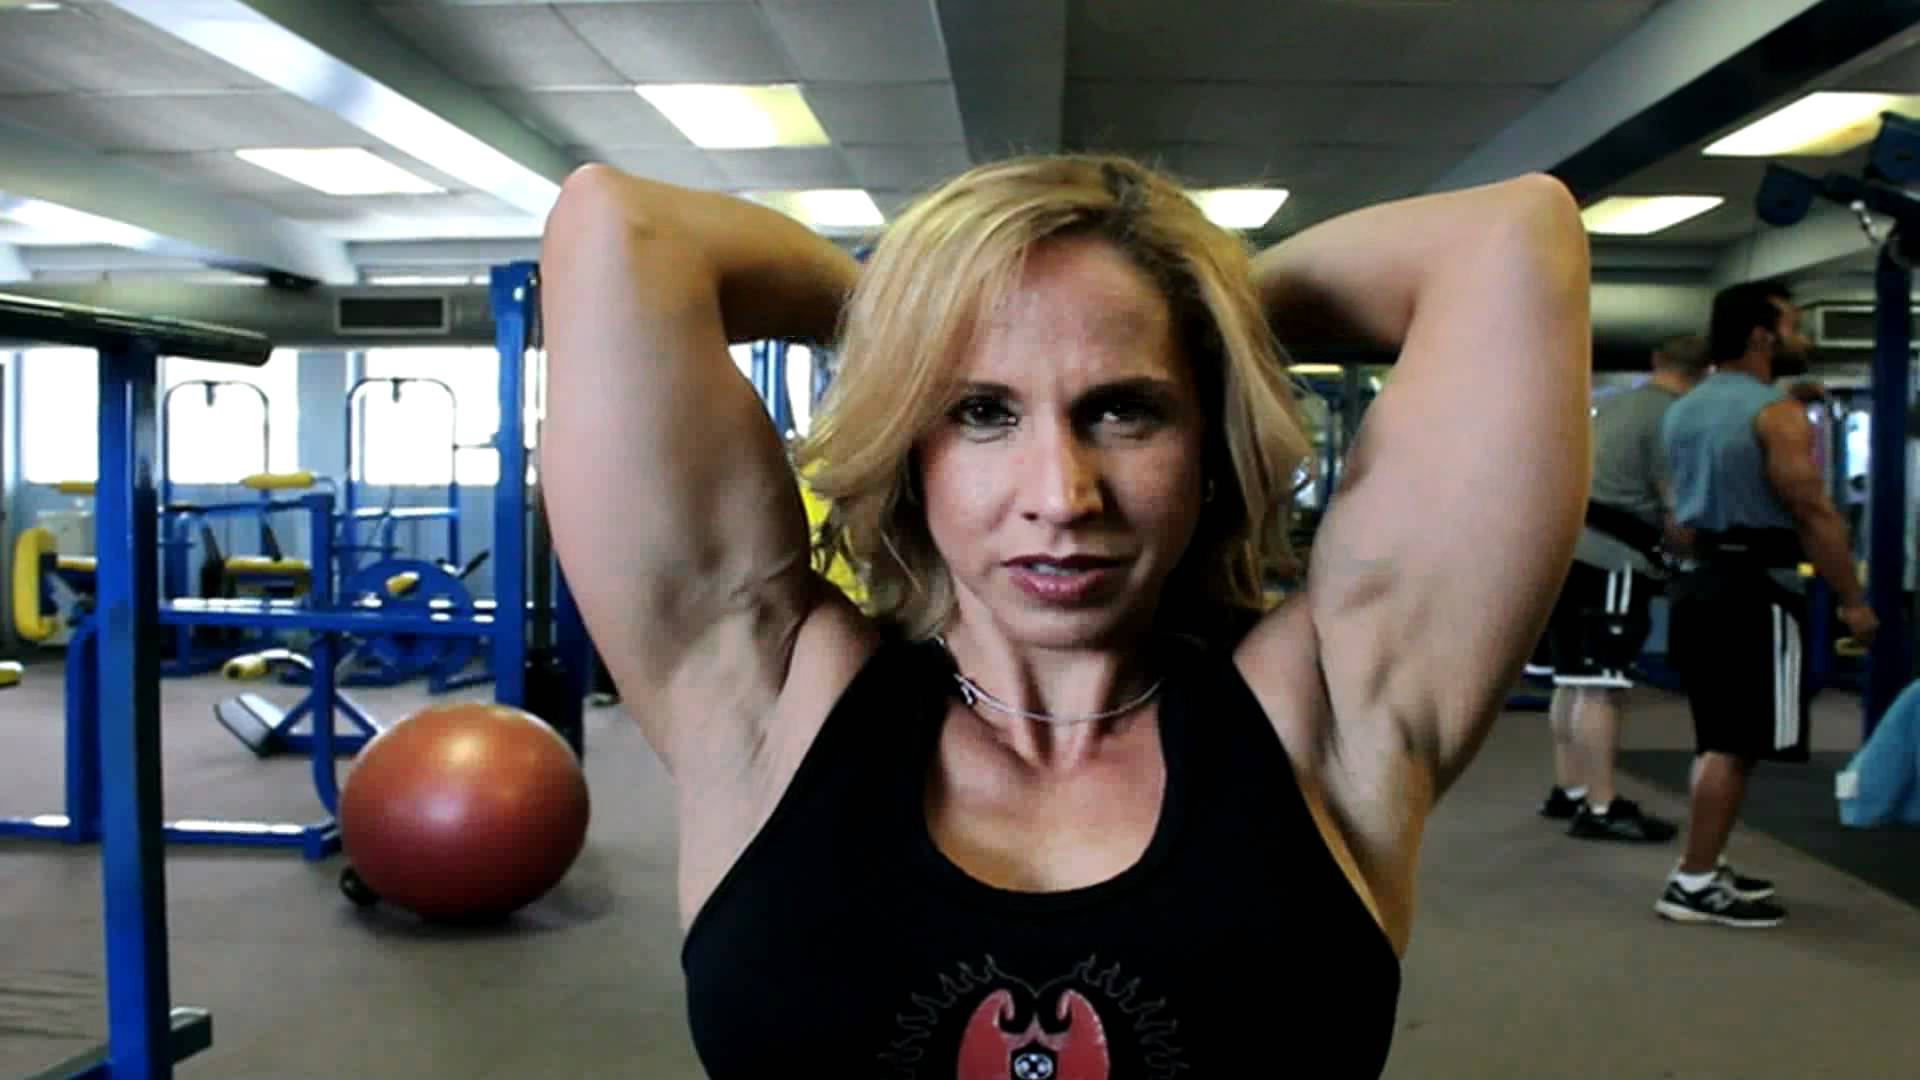 Ana Sanchez – Biceps Workout